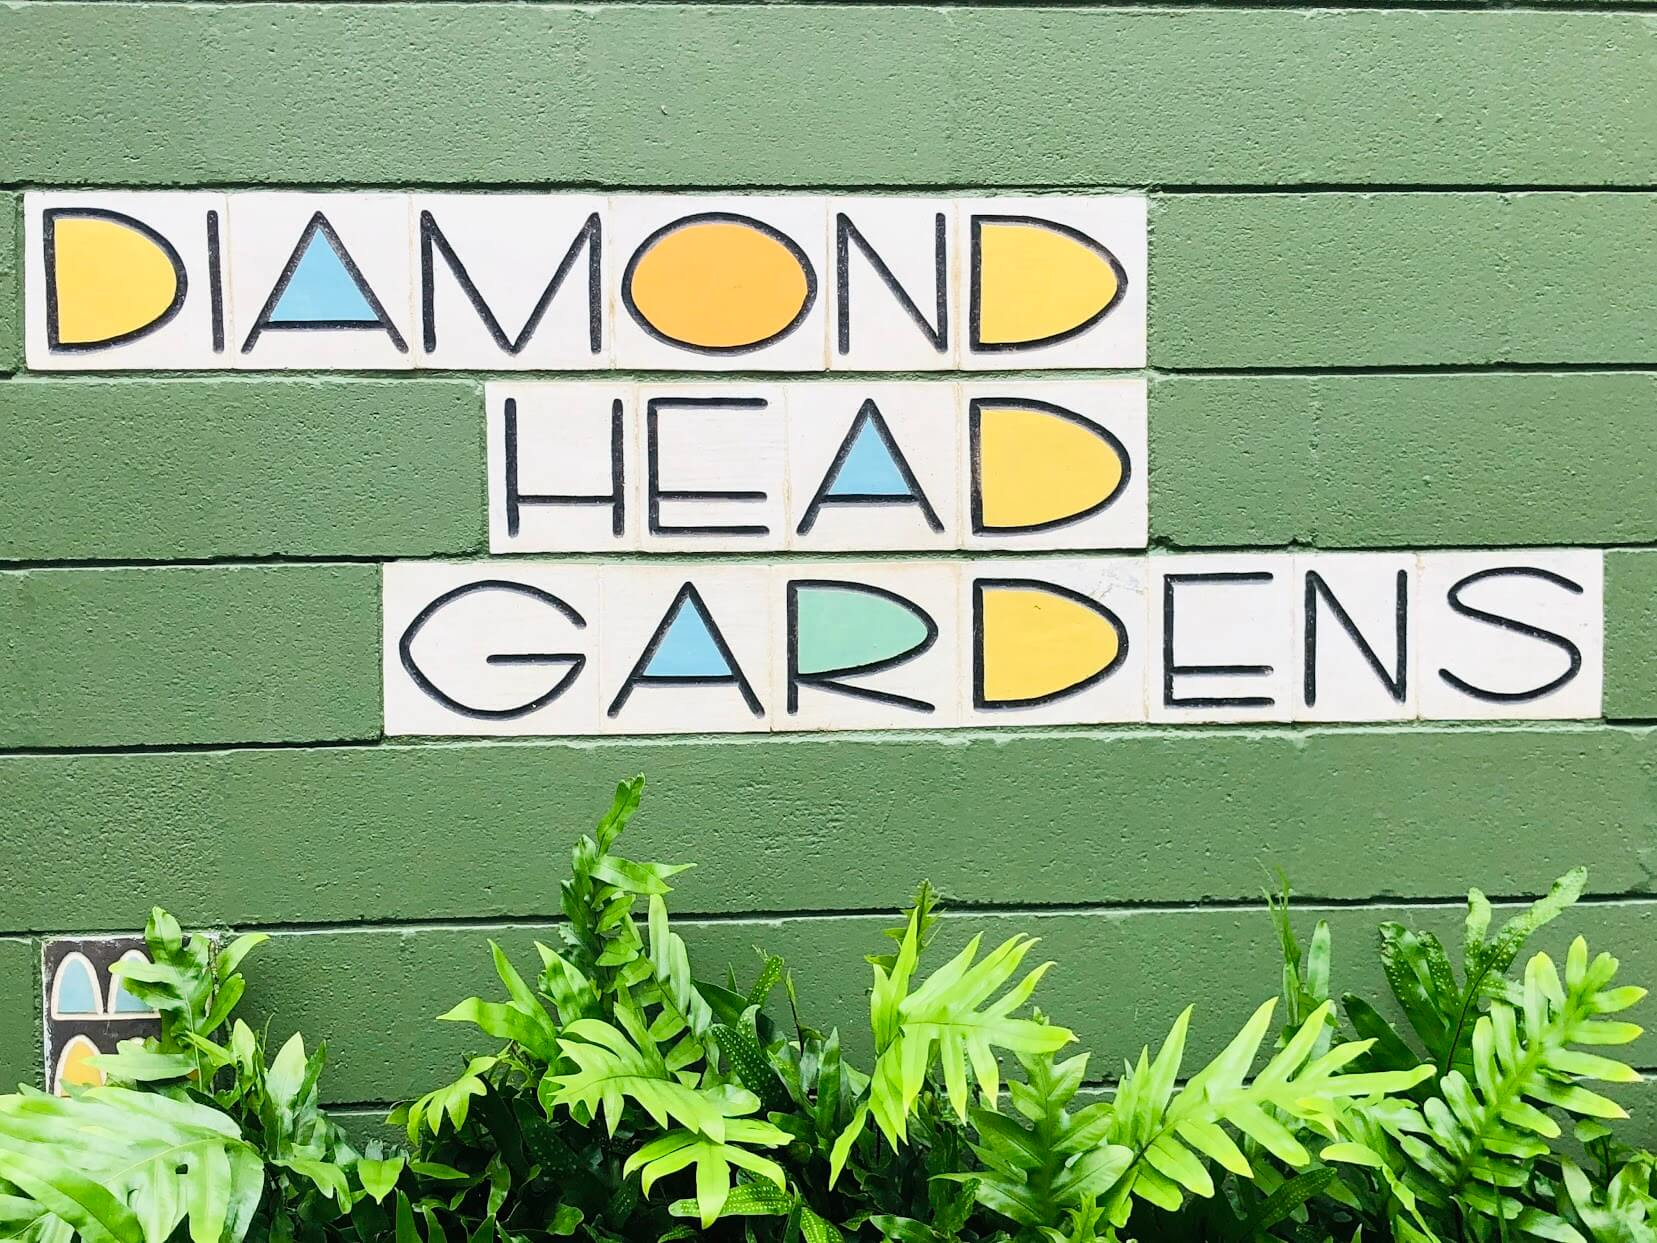 Diamond Head Gardensの看板